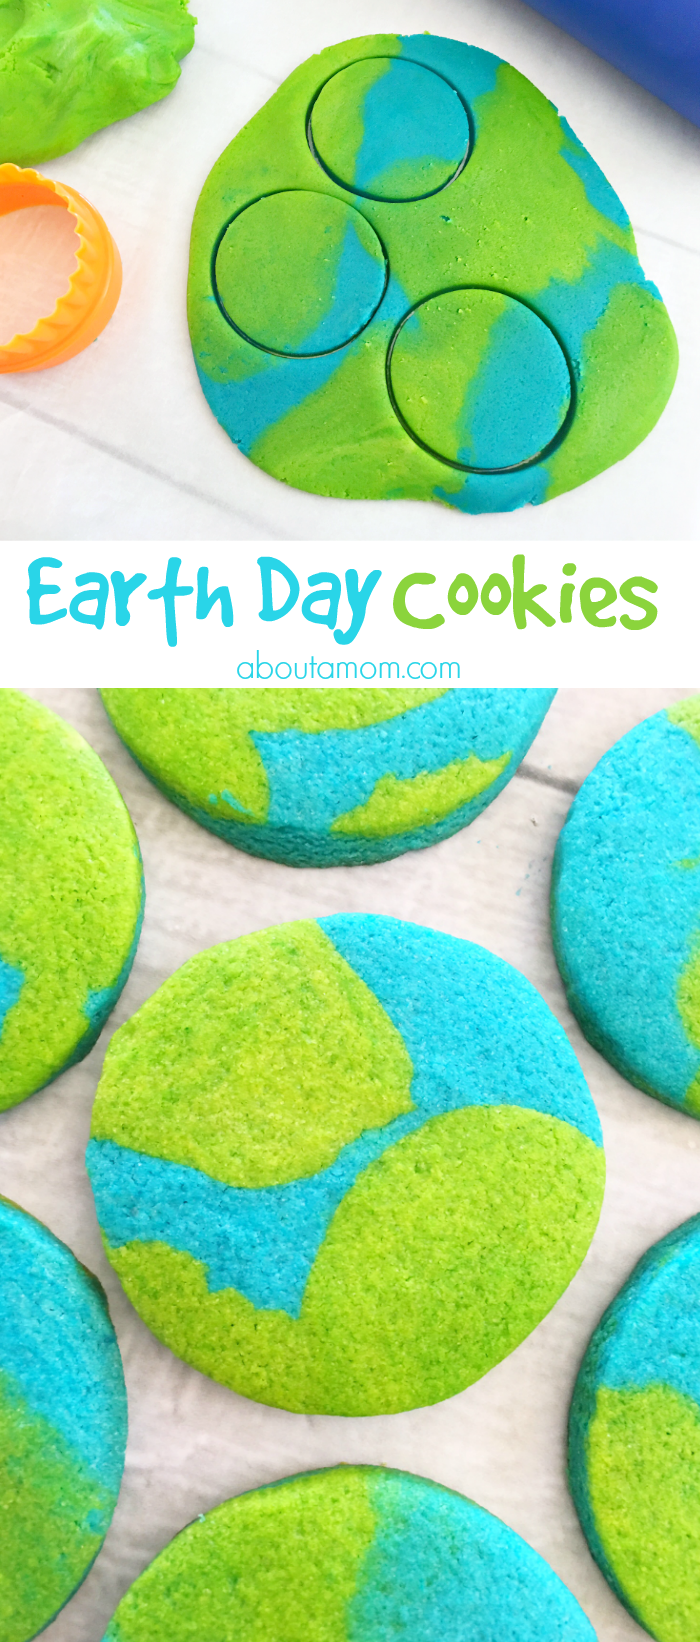 Earth Day printables and activities for kids. Earth Day cookies to celebrate Earth Day in April. Kids will love these!